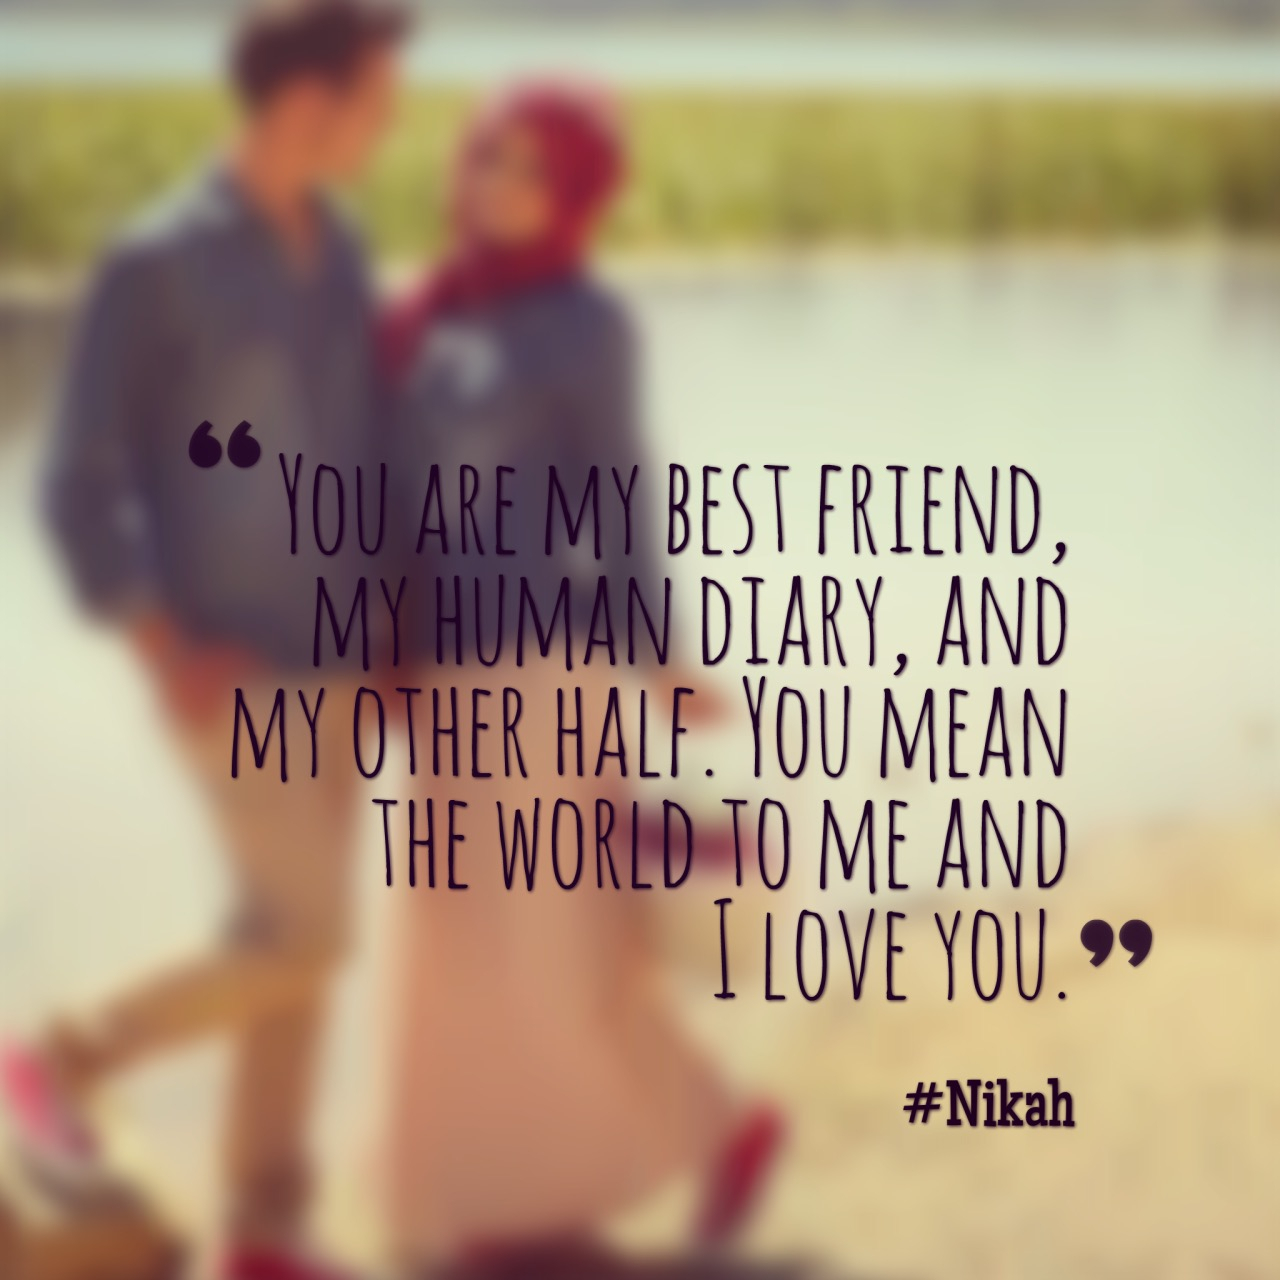 Islamic Quotes About Love Nikah Tag Your Spouse Islamic Quotes Pinterest